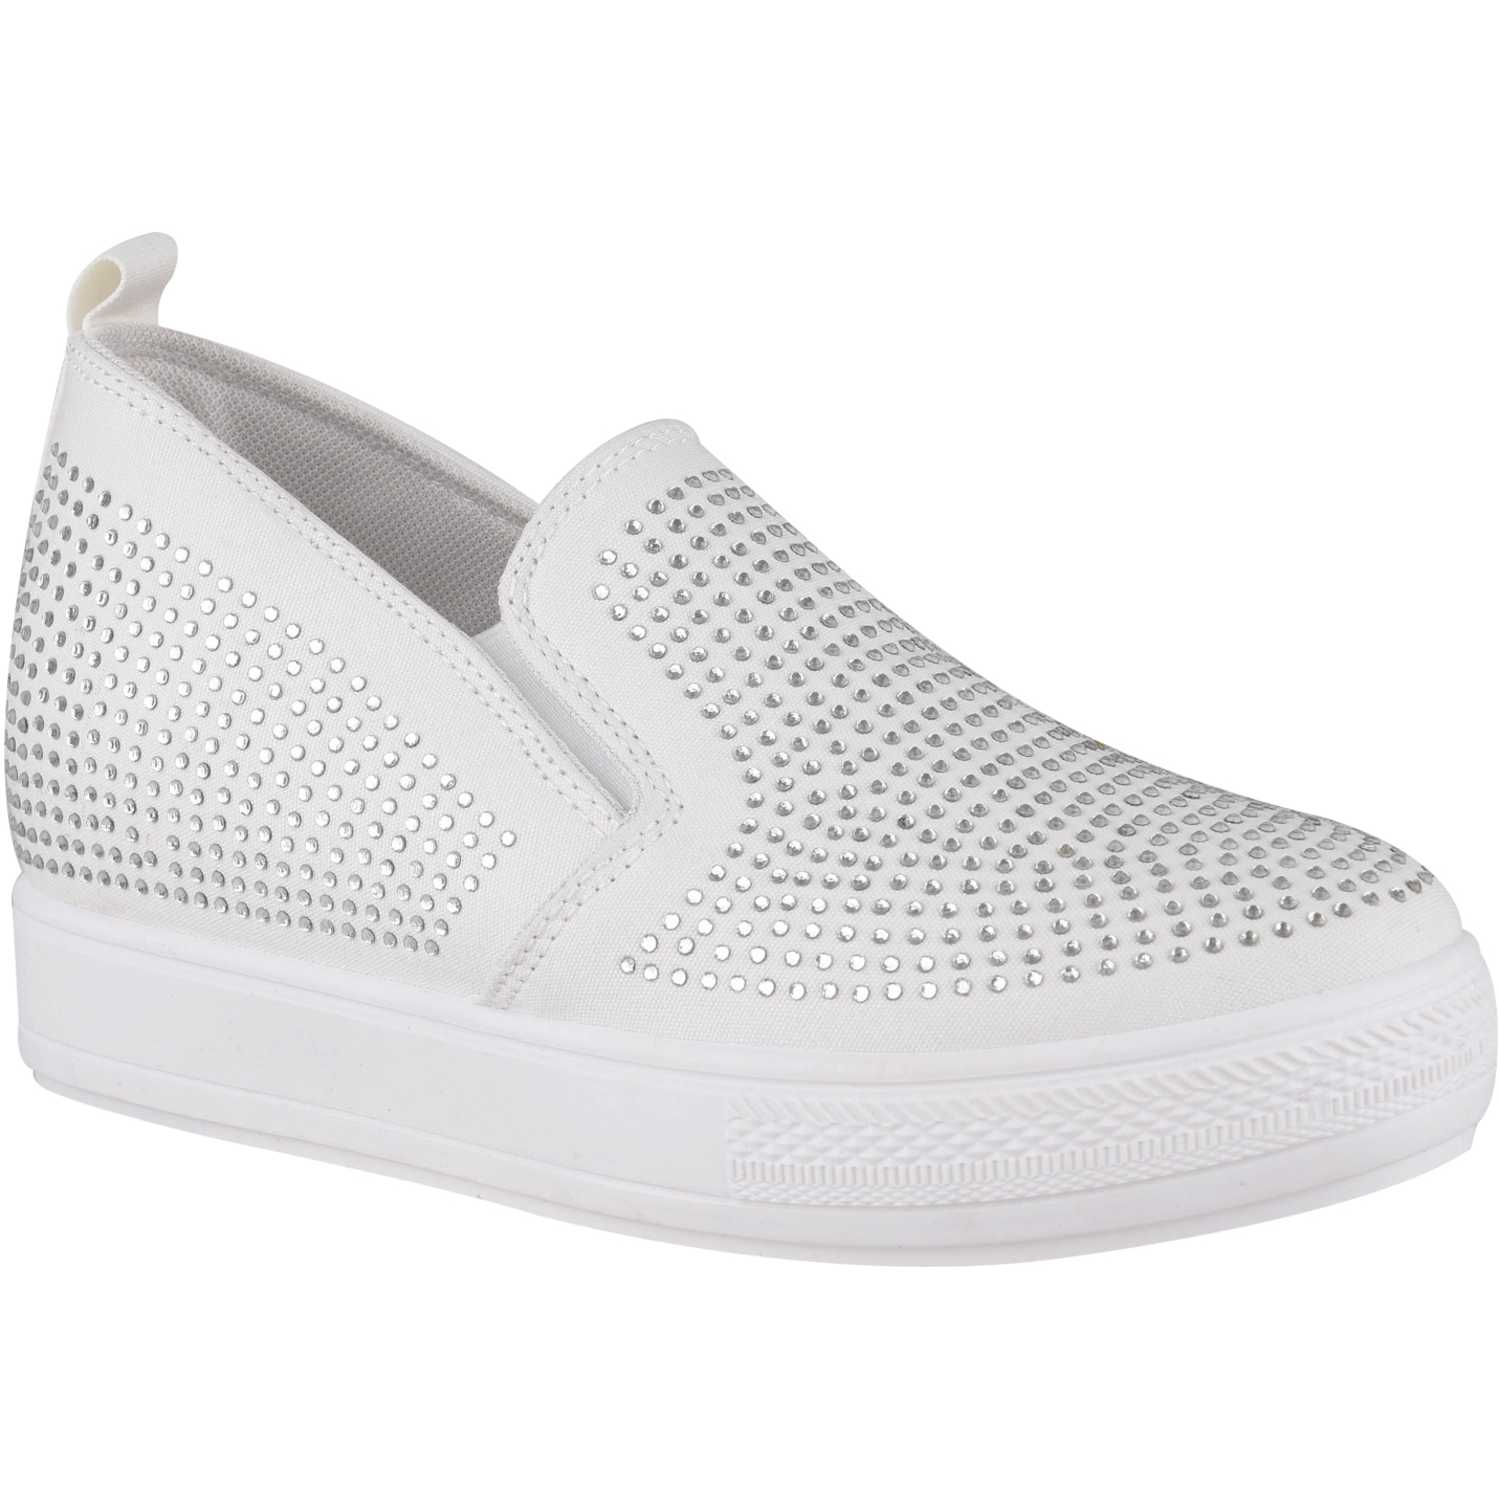 Platanitos zw-9a001 Blanco Zapatillas Fashion